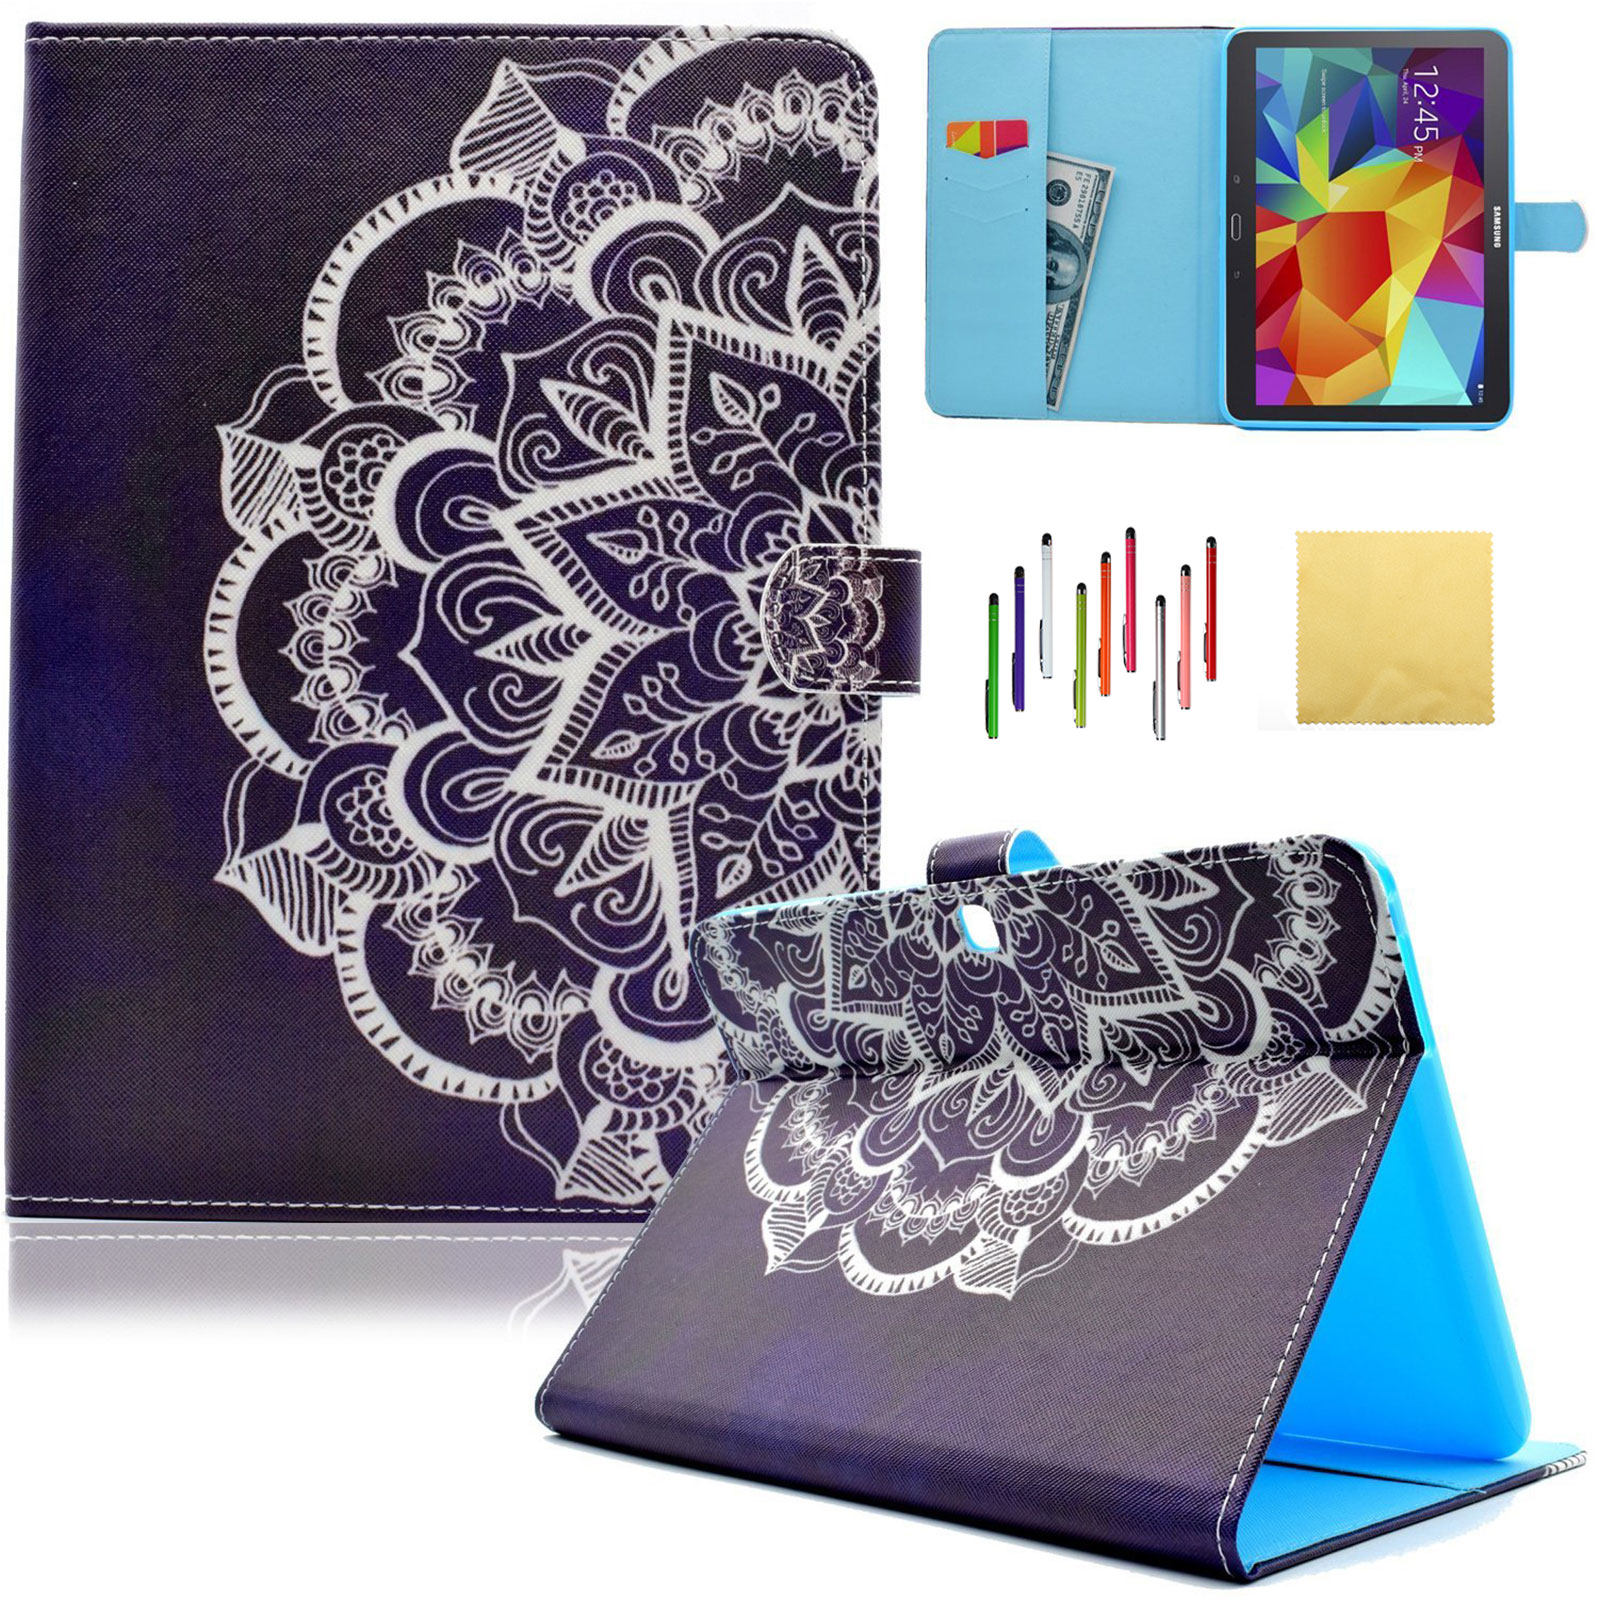 Galaxy Tab 4 10.1 Case, Goodest Multi-Angle Viewing Folio Stand Cover with Auto Sleep/ Wake Card Holder for Samsung Galaxy Tab 4 10.1 inch Tablet SM-T530/ T531/ T535, Half Flower